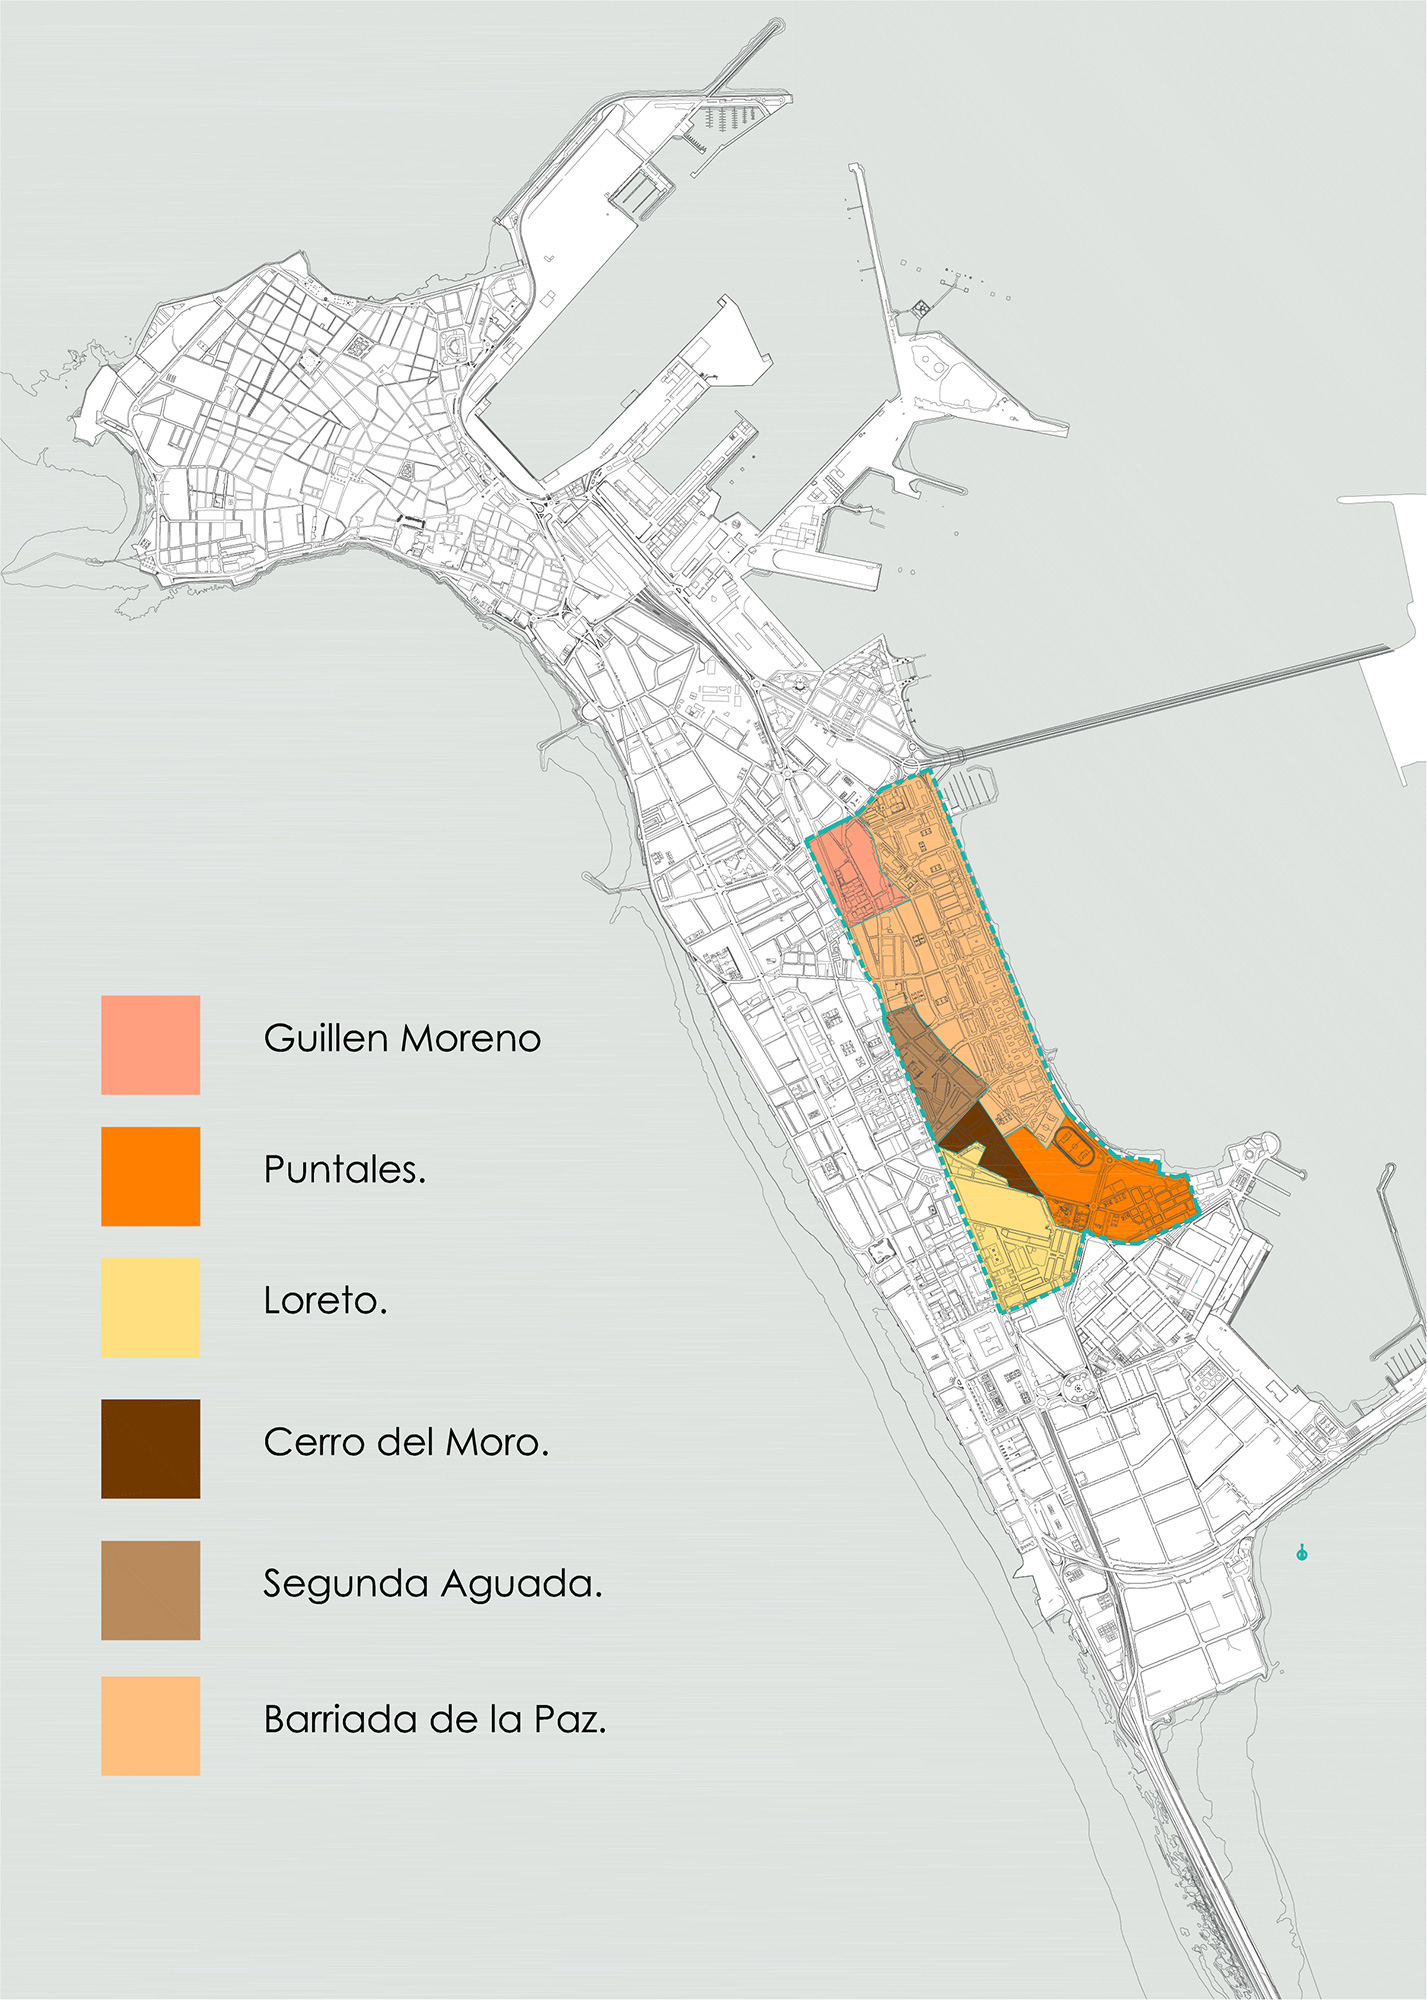 Delimitación de barrios